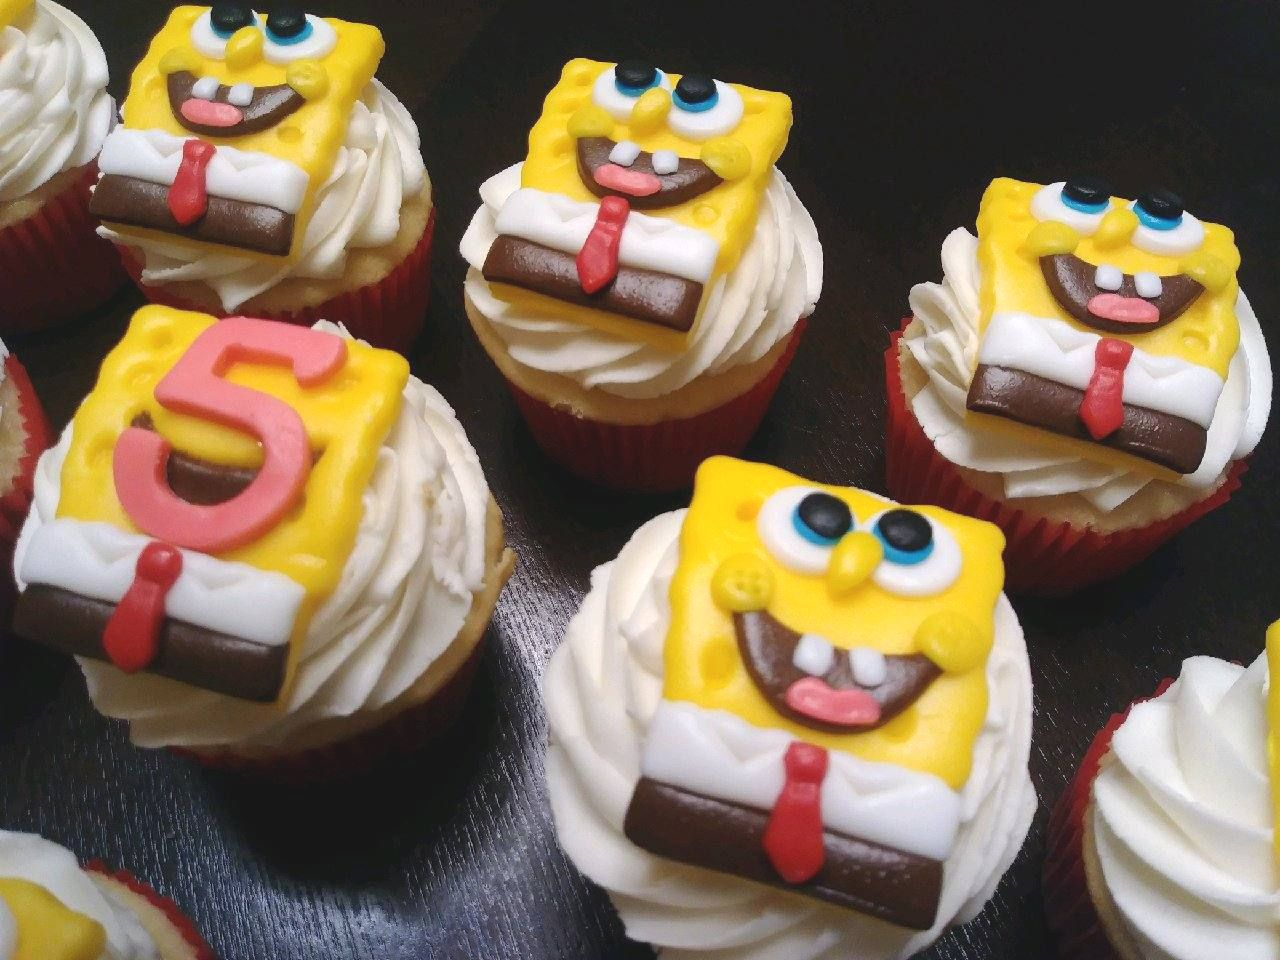 Spongebob Cupcakes